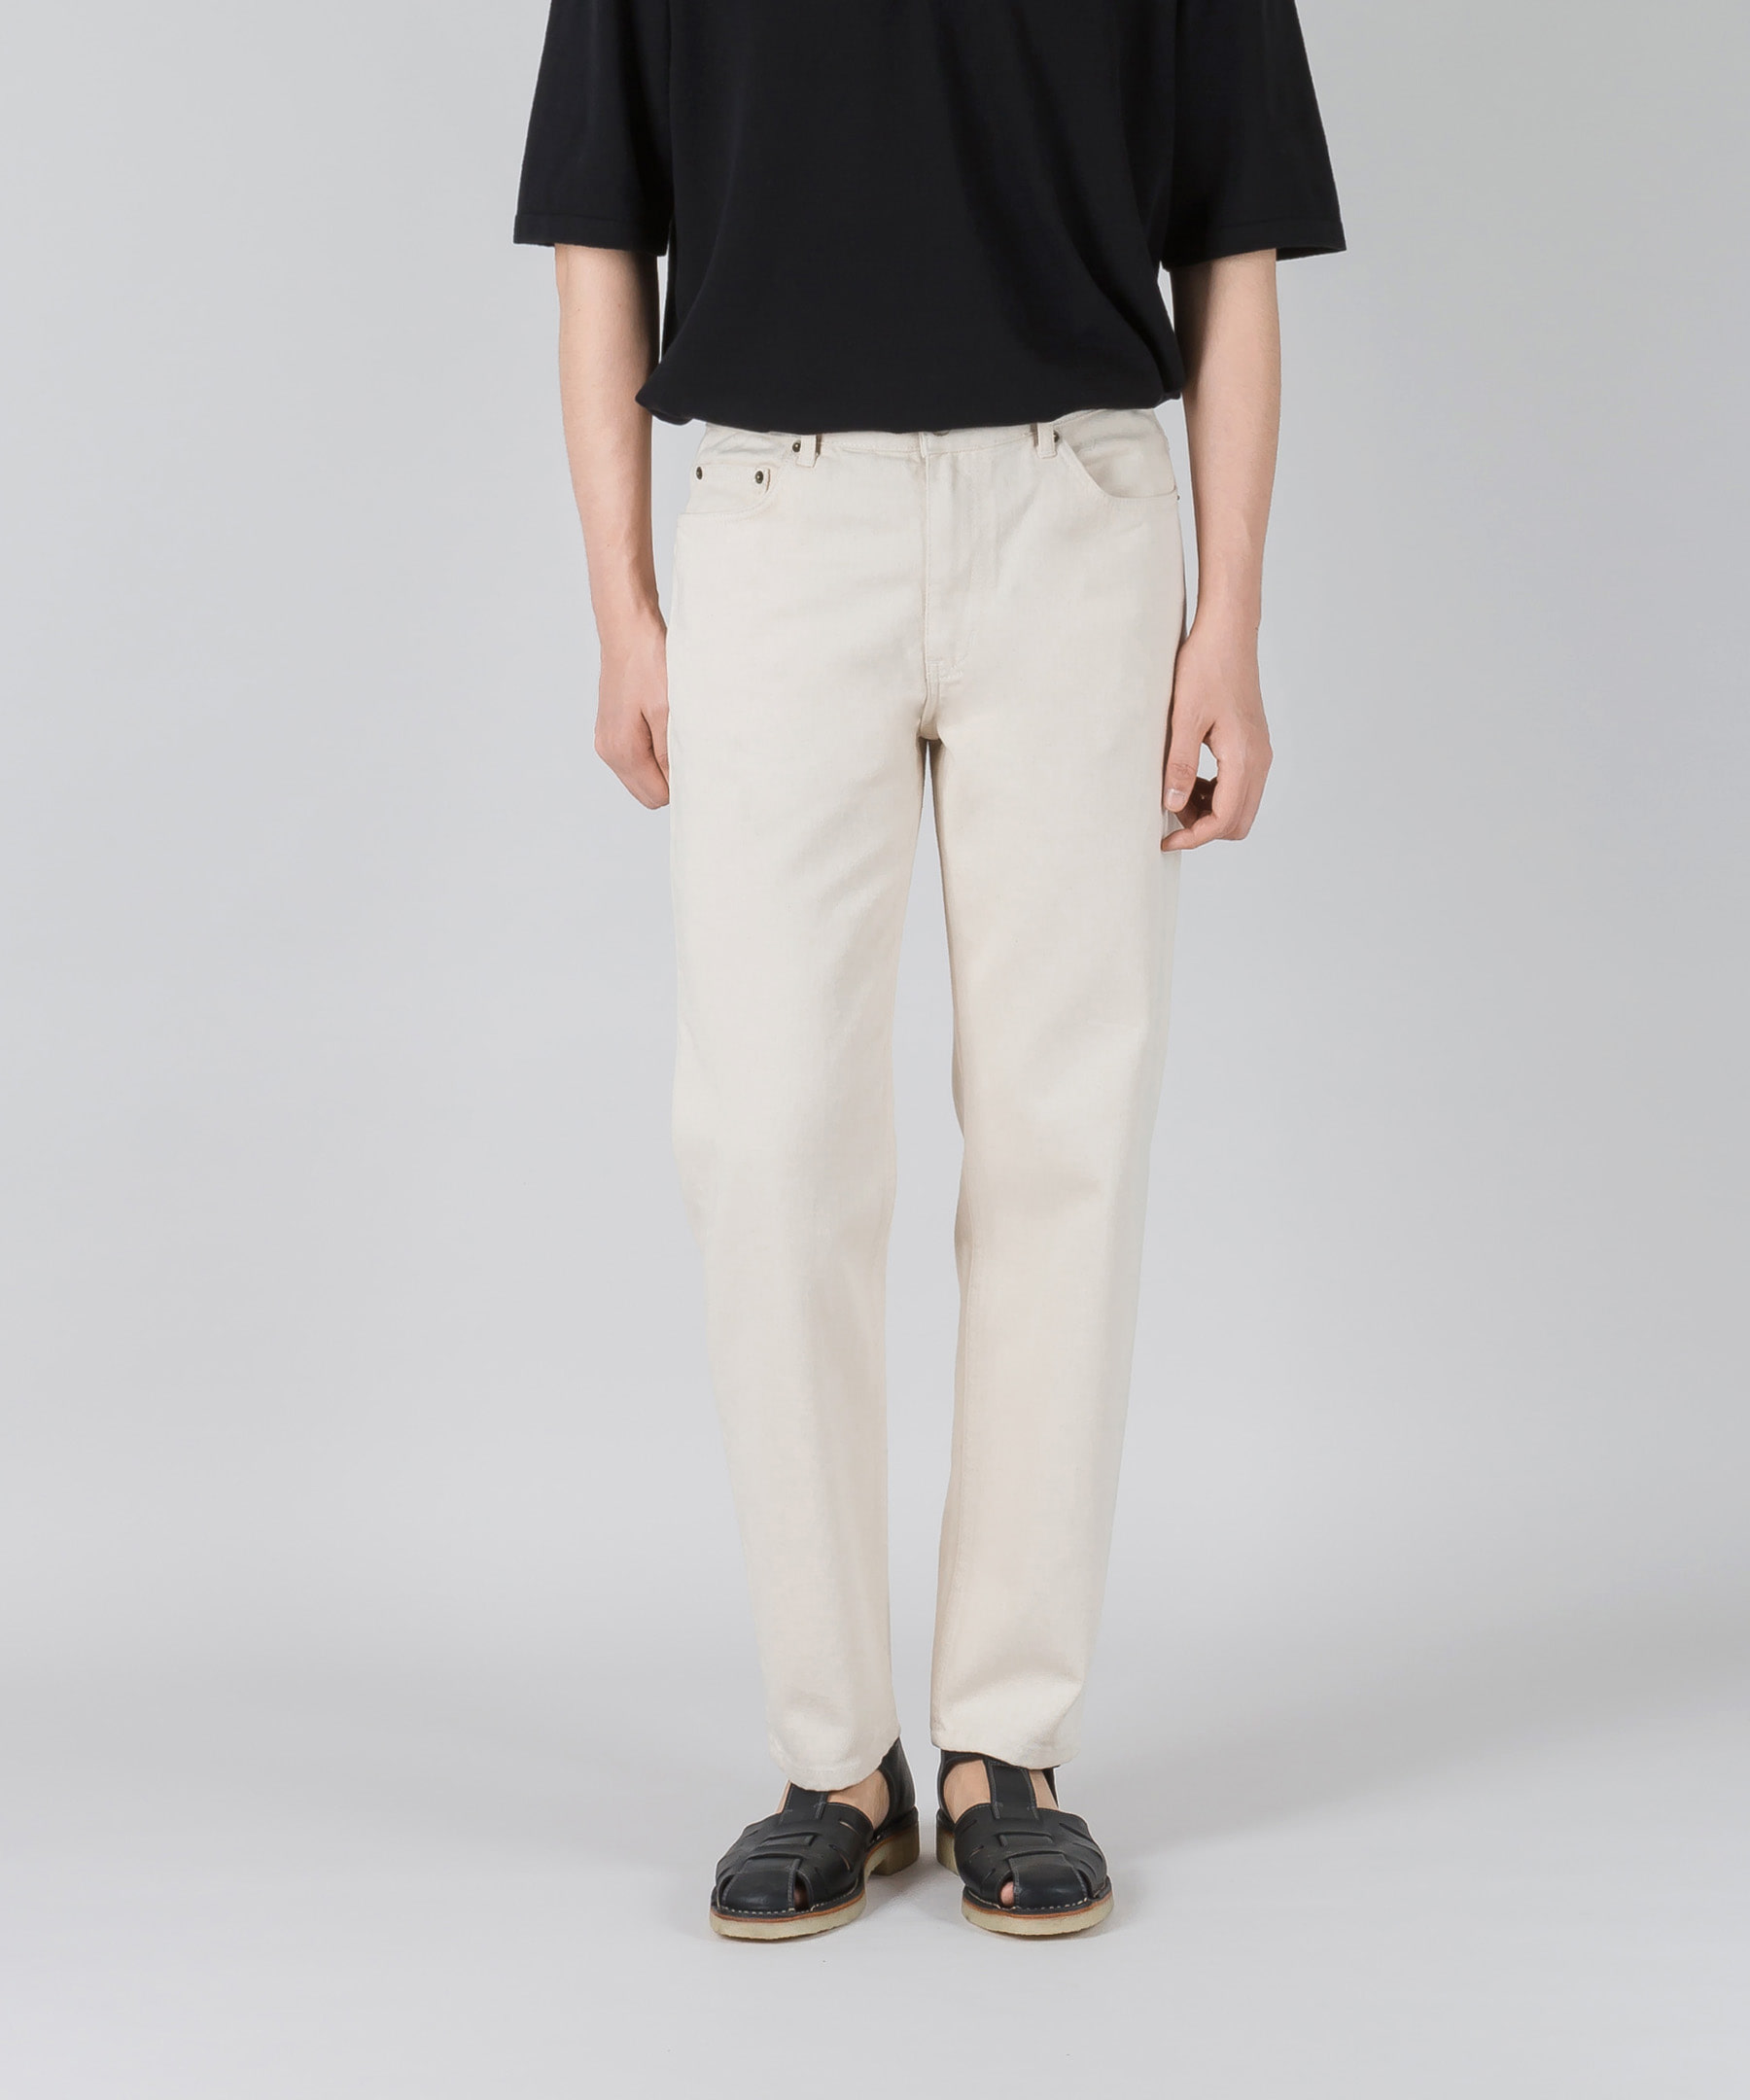 EASYGOING CROP PANTS(regular tapered fit)#7001 cream